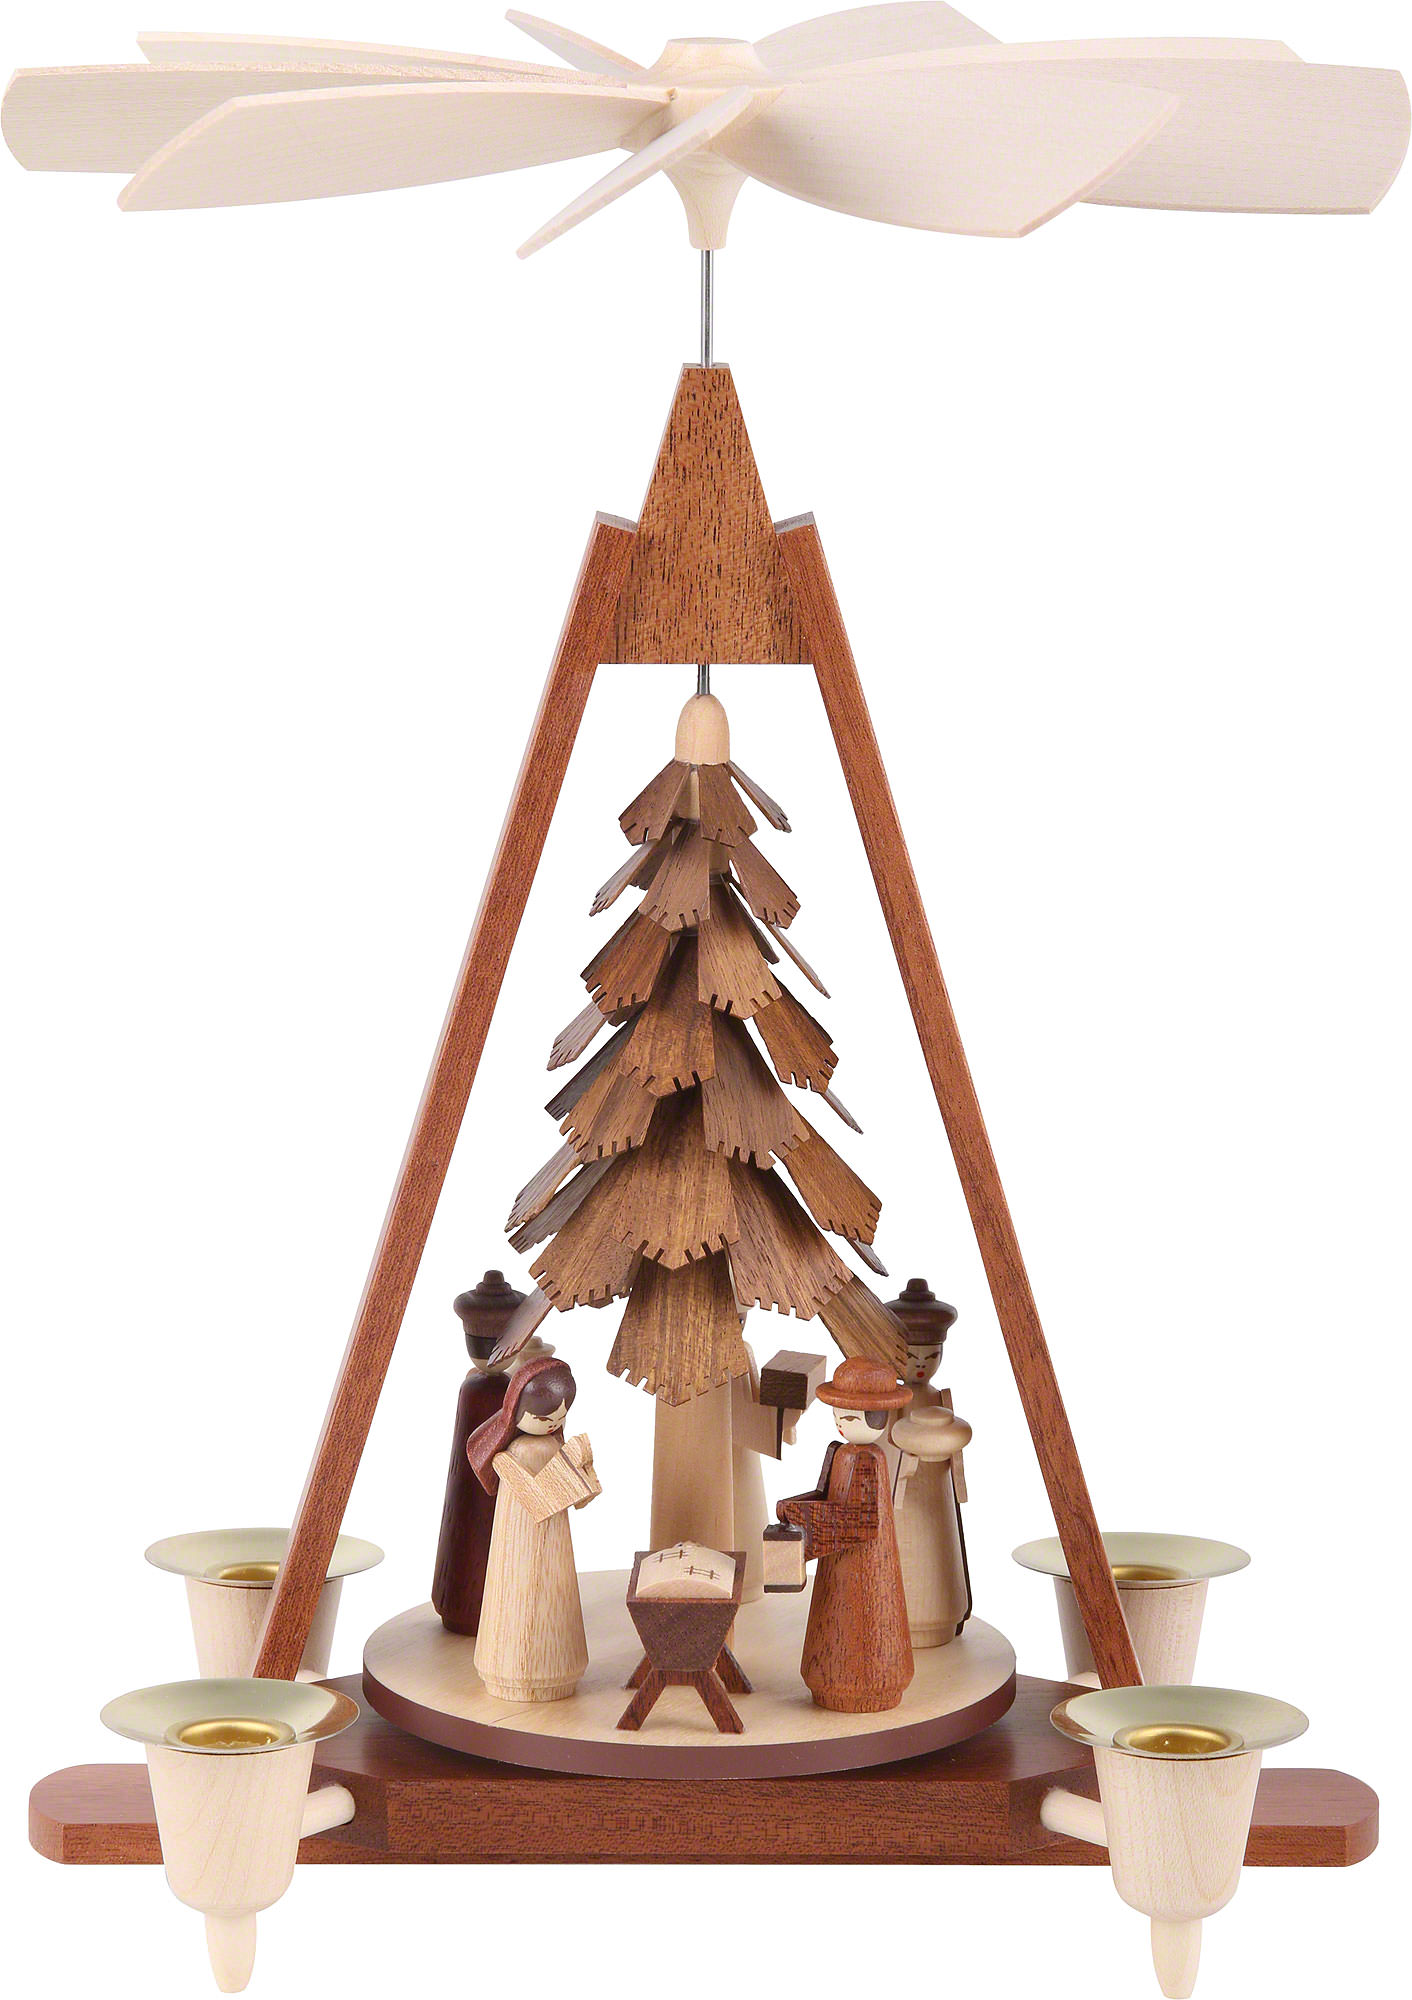 mller kleinkunst gmbh seiffen - German Handmade Wooden Christmas Decorations